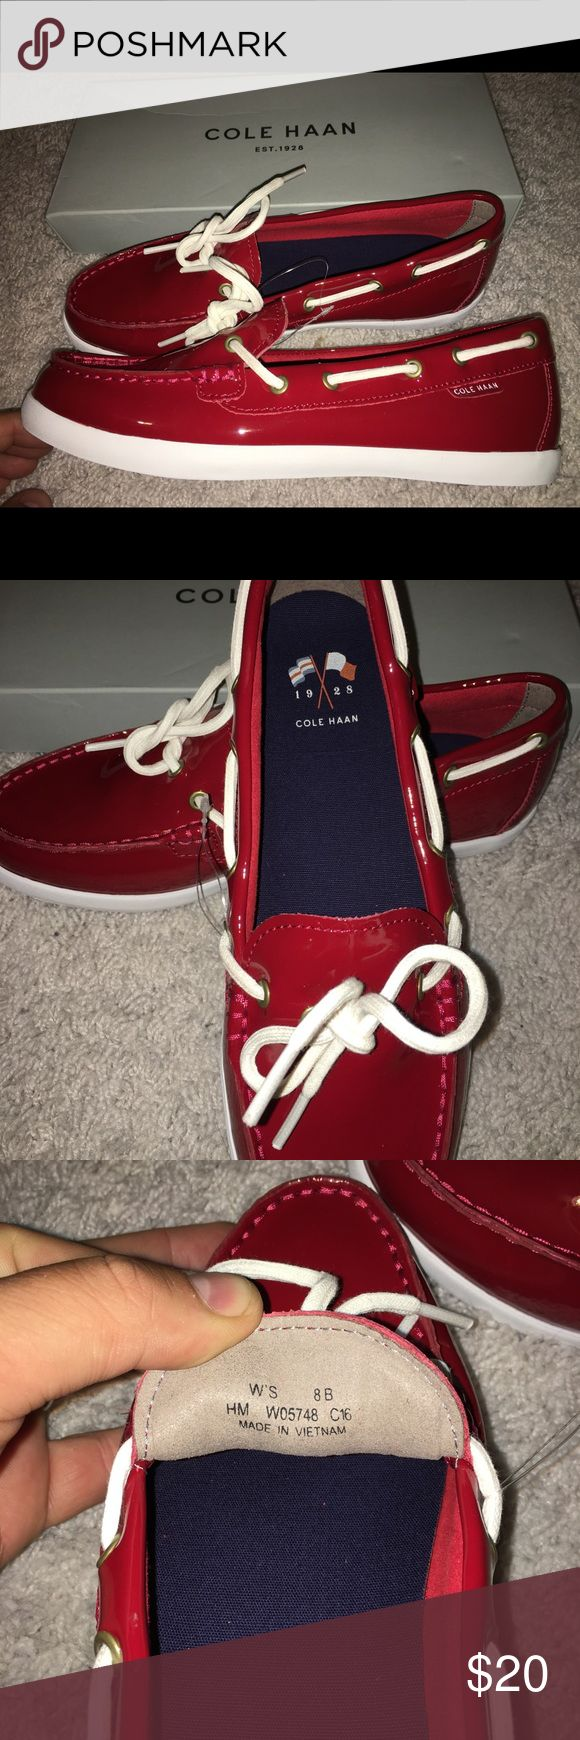 Cole Hann shoes brand new Red in color people call them water or boat shoes Cole Haan Shoes Flats & Loafers